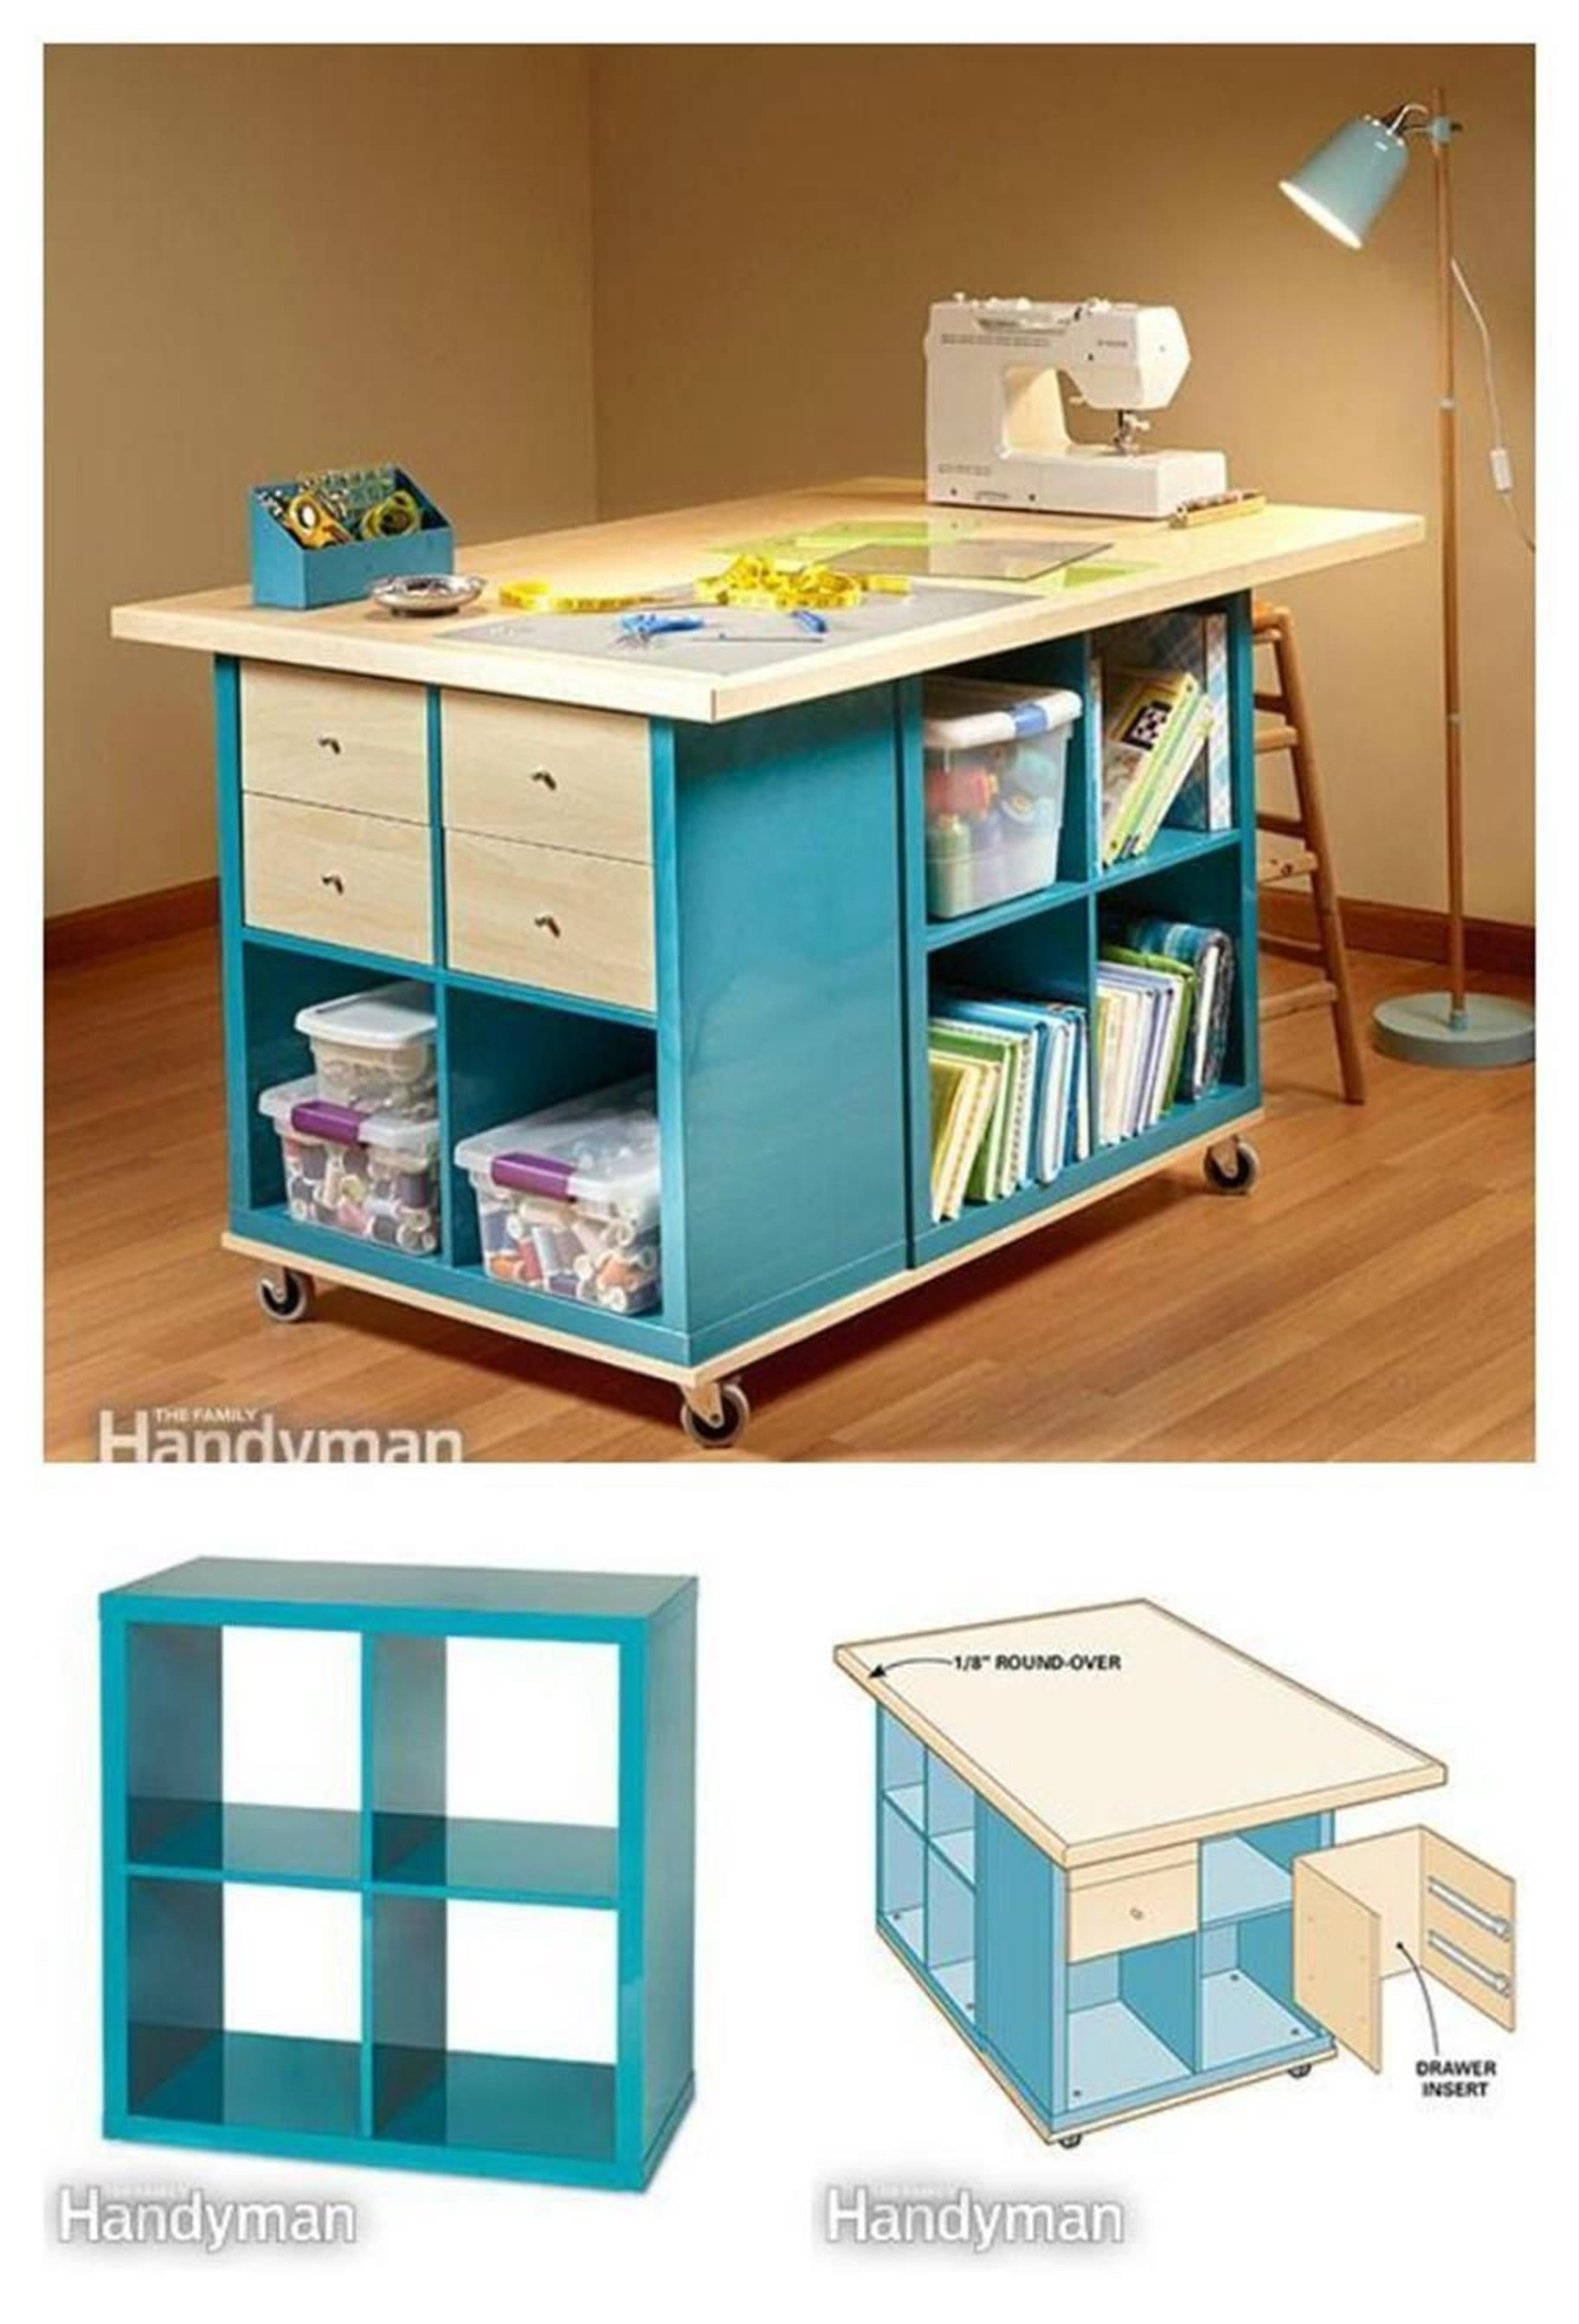 20 Best Craft Room Storage And Organization Furniture Ideas 2 In 2020 Craft Room Tables Diy Craft Room Table Organization Furniture